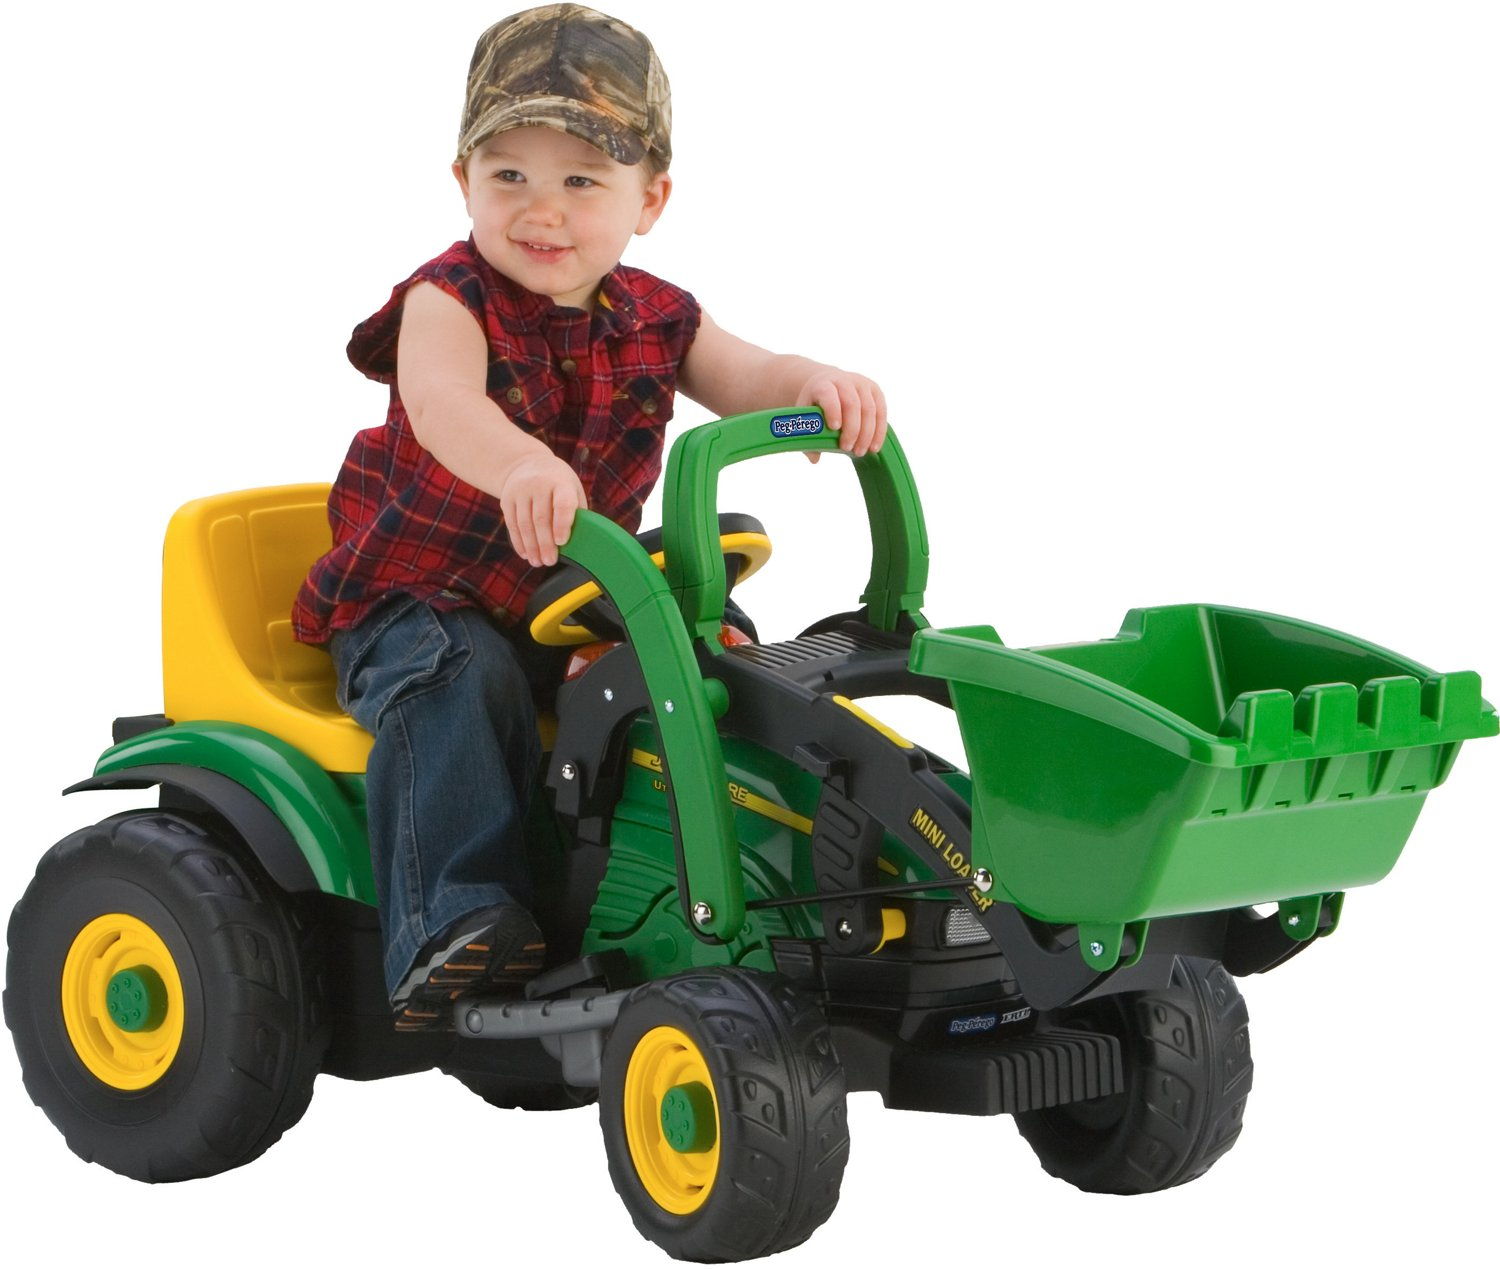 Peg Perego John Deere Mini Power Loader 6 v Ride-On Tractor - view number 3